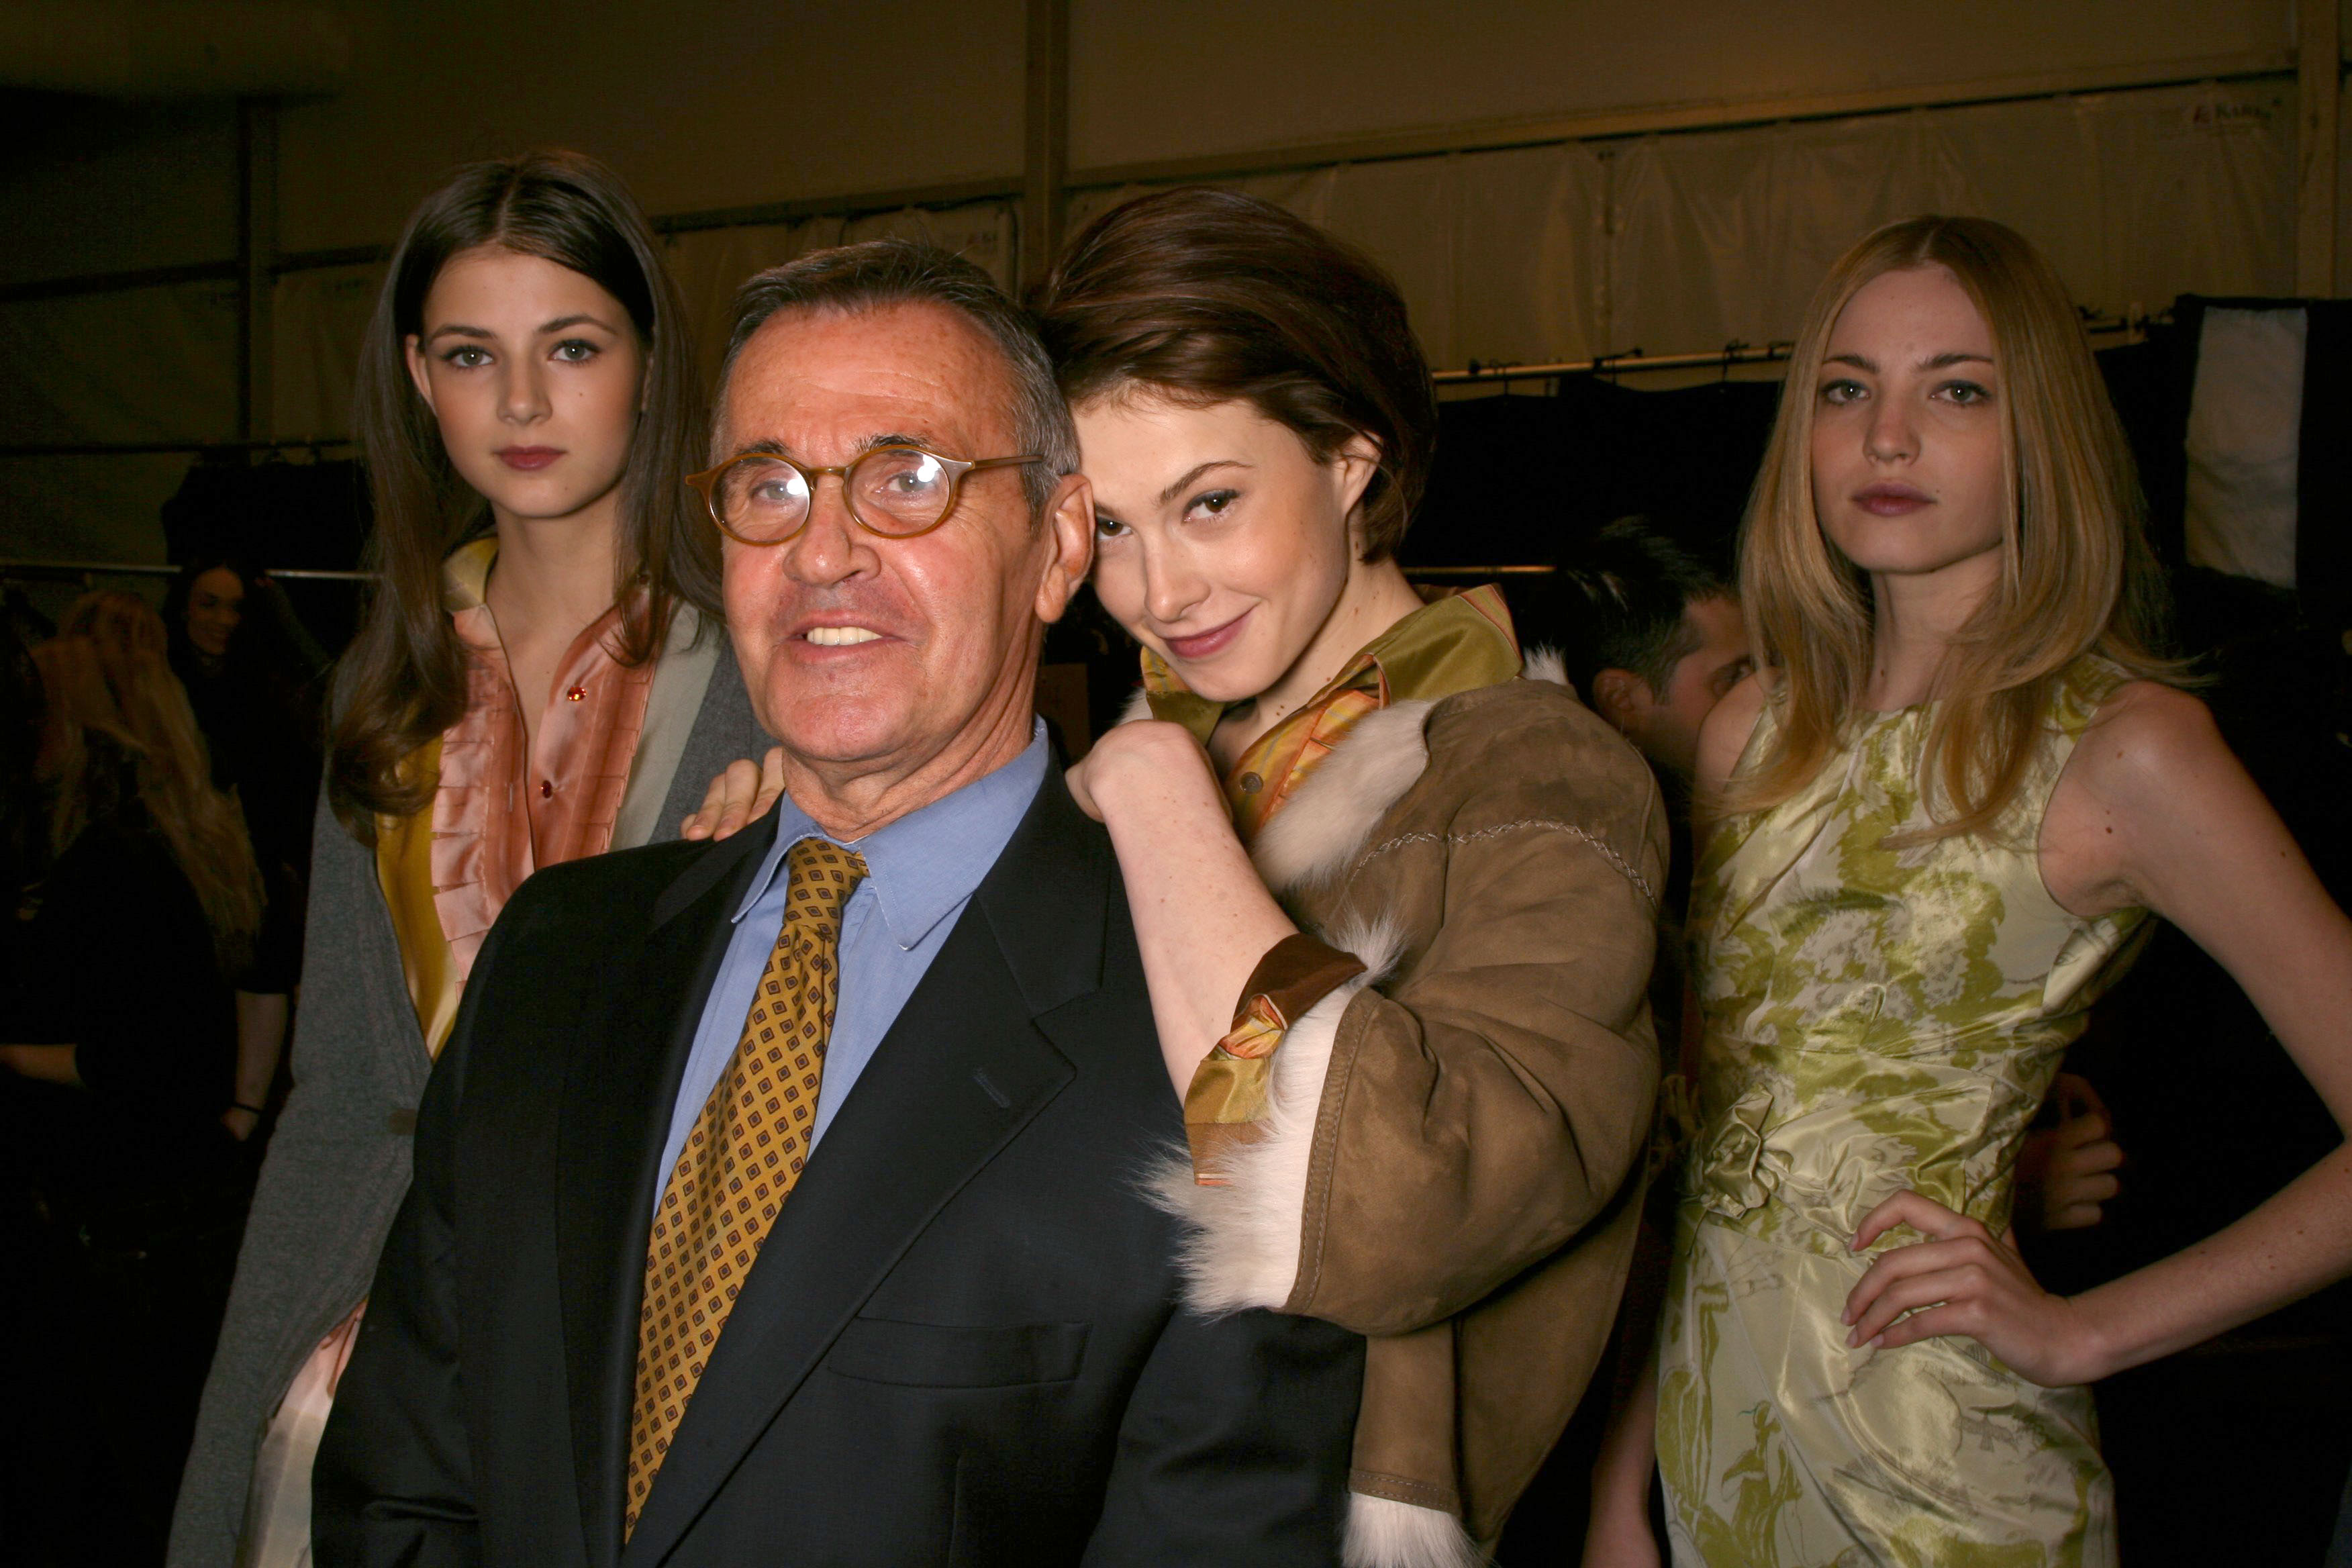 Michael Vollbracht and Elettra Ingrid Wiedemann RosselliniBILL BLASS AUTUMN 2006 SHOW, OLYMPUS FASHION WEEK, NEW YORK, AMERICA - 06 FEB 2006